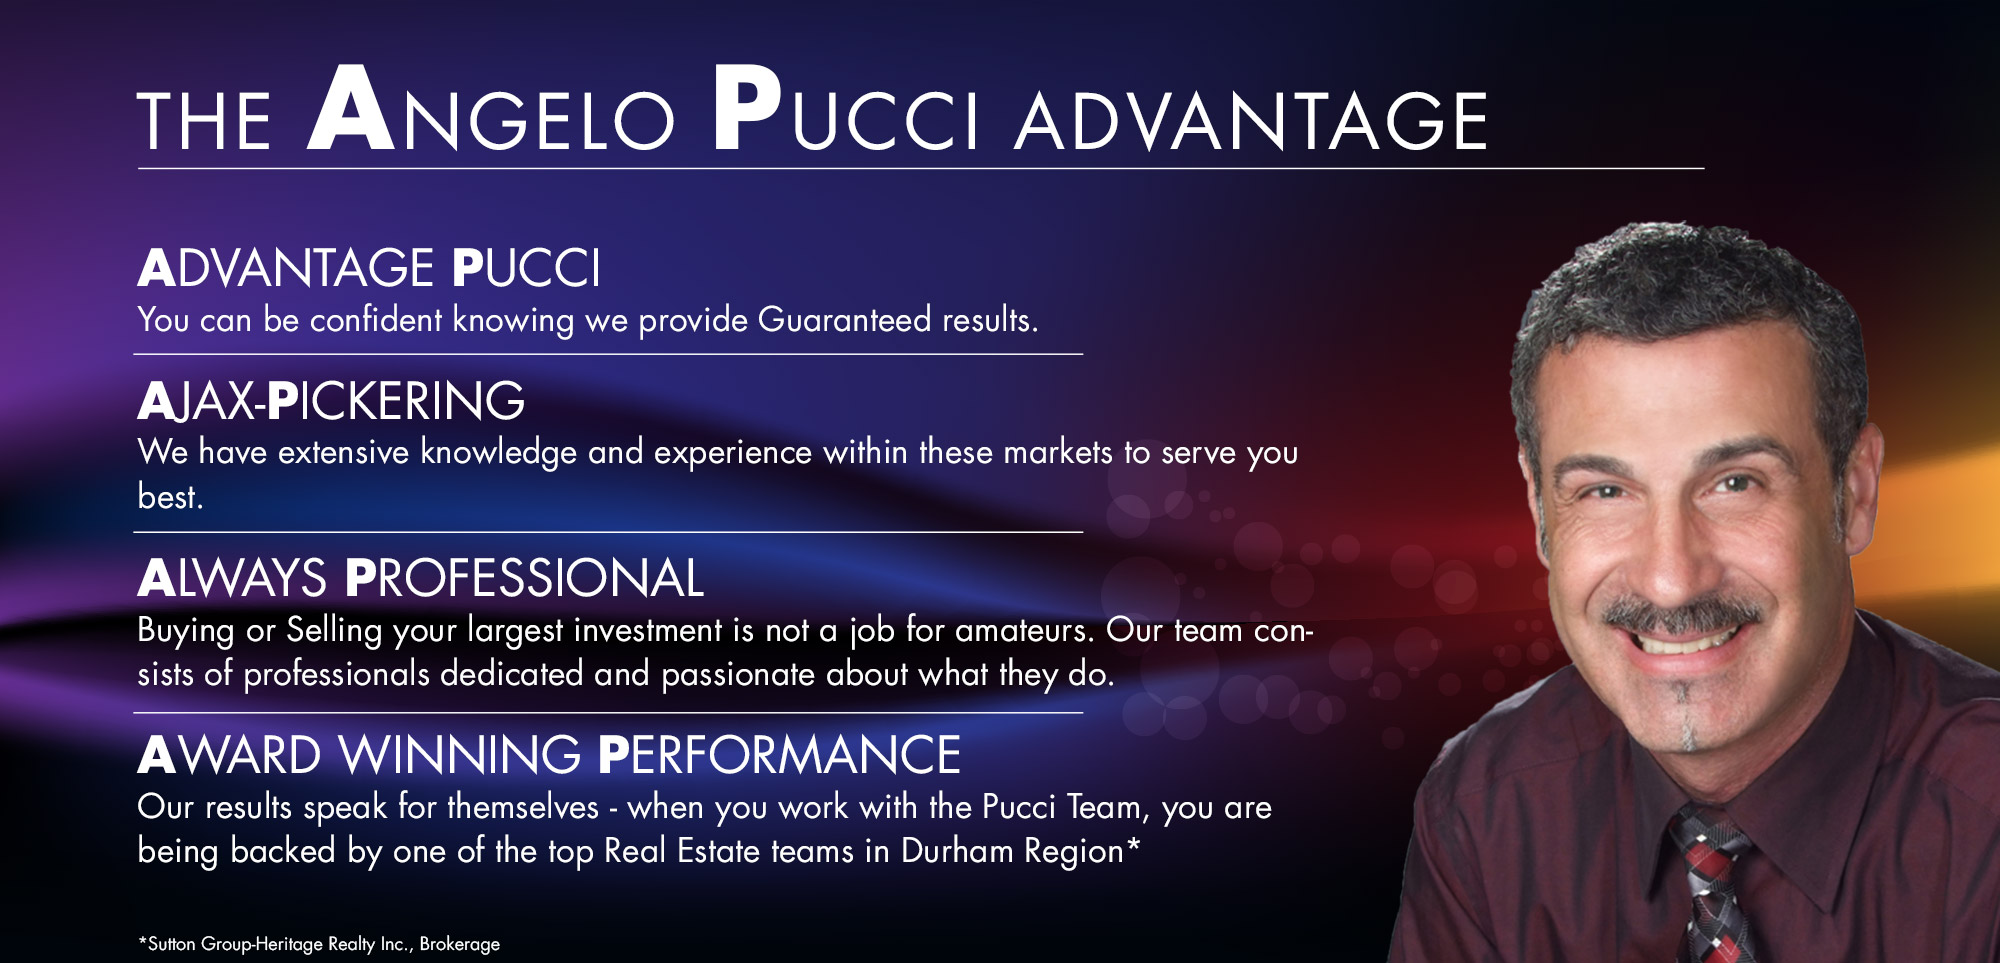 The Angelo Pucci Advantage